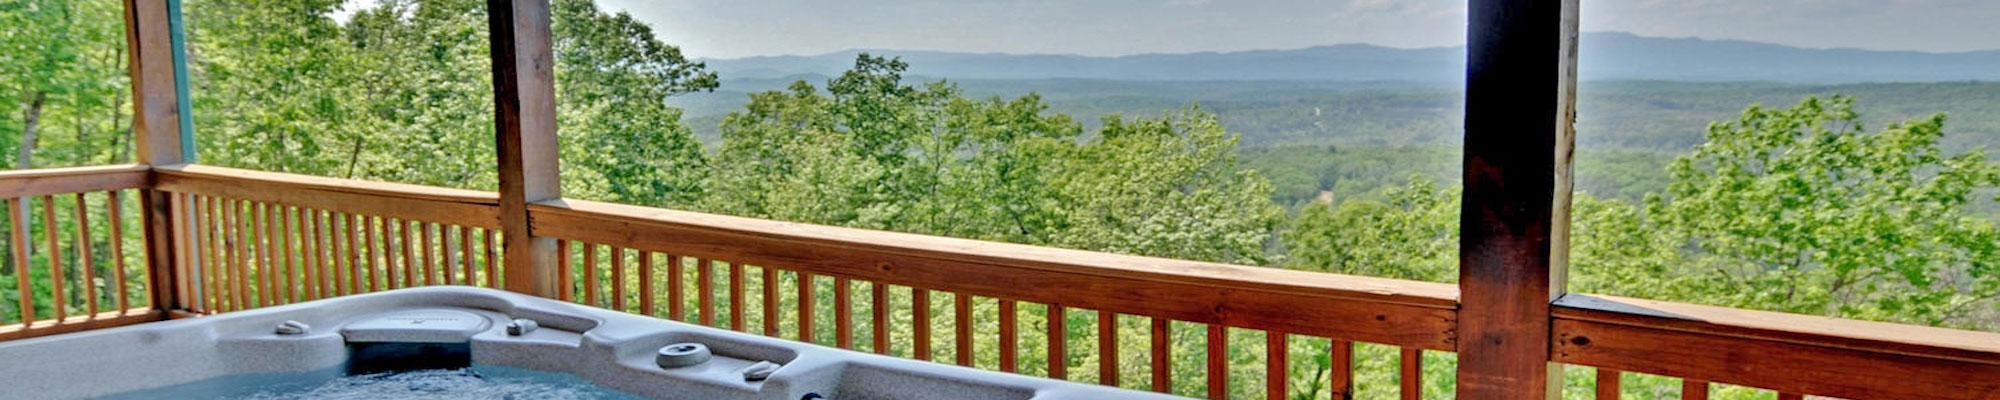 Rental Cabins with hot tubs